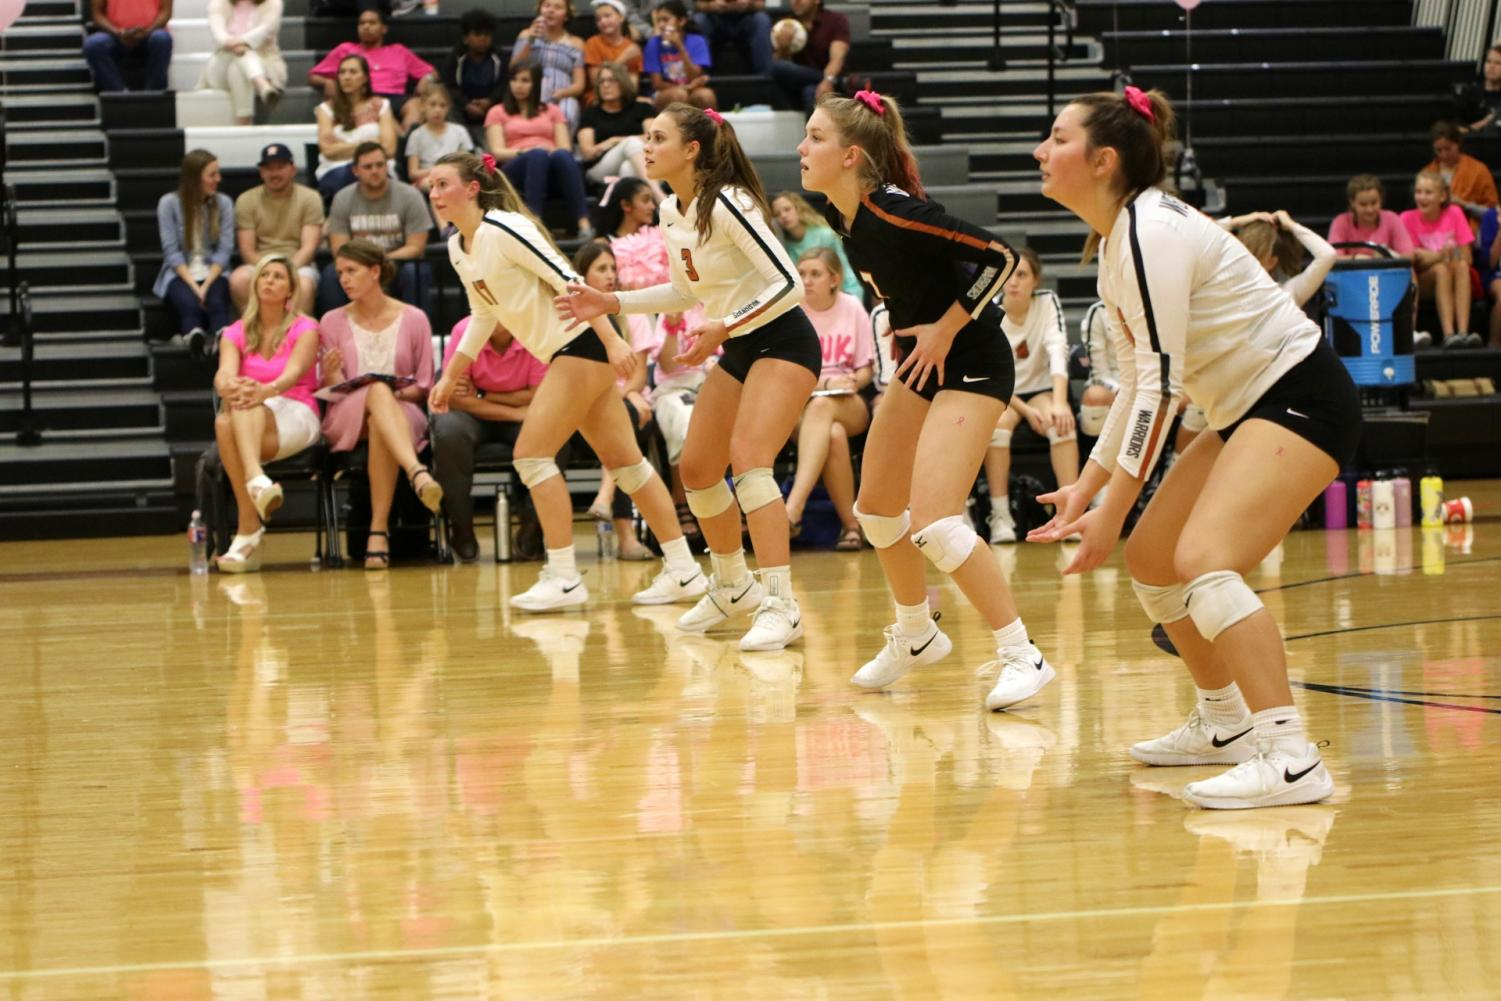 Juniors+Kenzie+Beckham+and+Abby+Gregorczyk+stand+alongside+seniors+Maddie+Gillispie+and+Abi+Rucker+before+McNeil+serves+the+ball.+The+Lady+Warriors+wear+pink+scrunchies+as+a+symbol+of+breast+cancer+awareness.